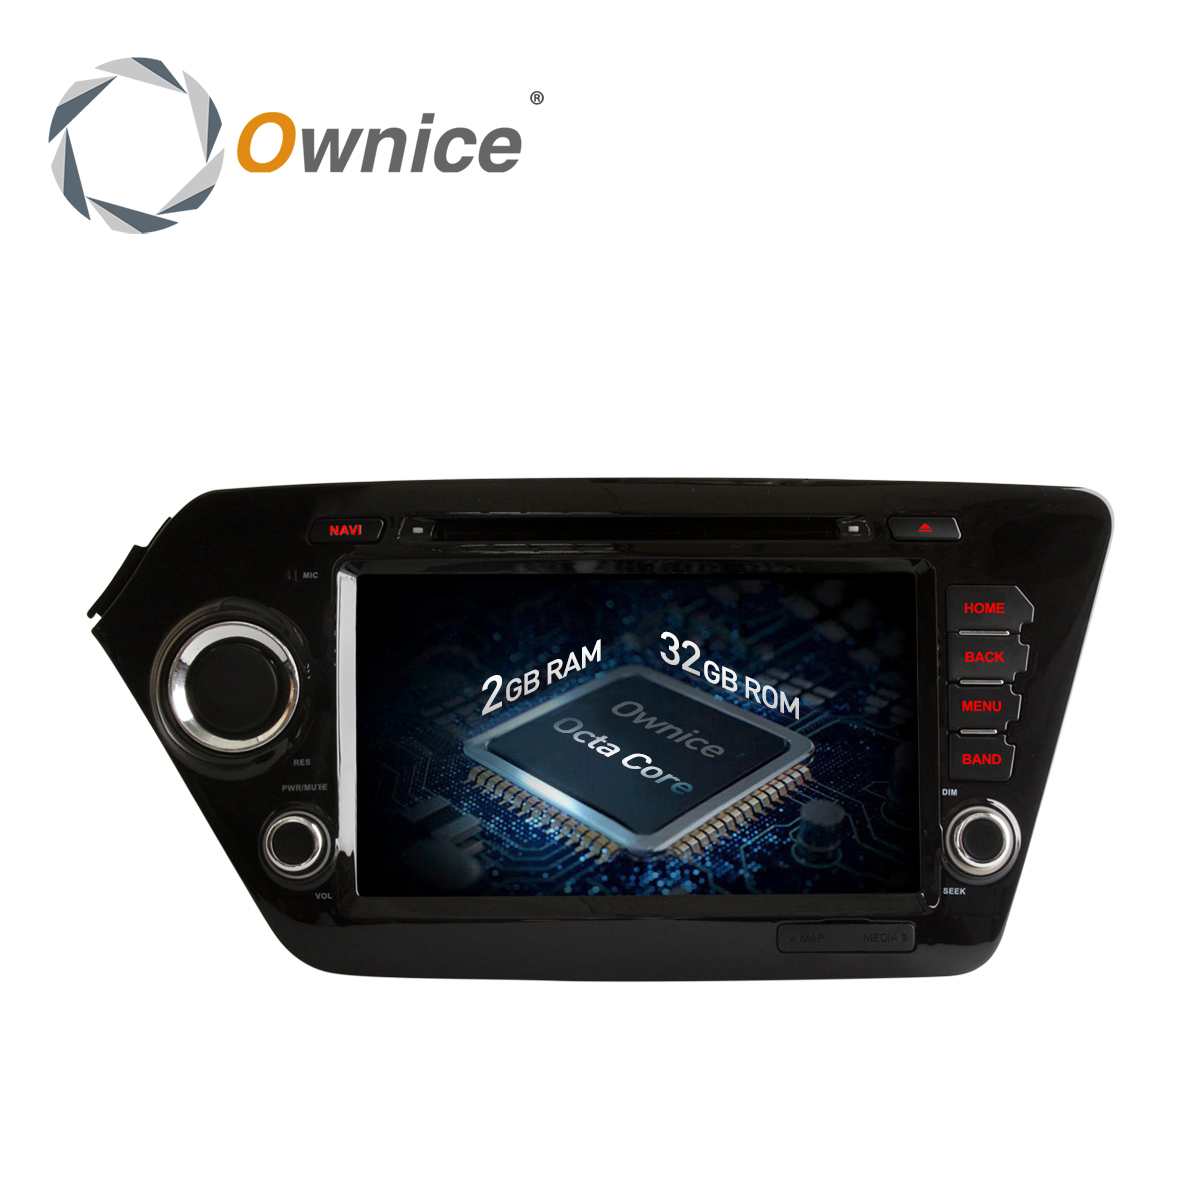 Ownice C500 Octa 8 Core 2GB RAM Android 6.0 Car dvd Radio gps player for Kia rio k2 2010 2011 2012 support wifi 4G LTE Network